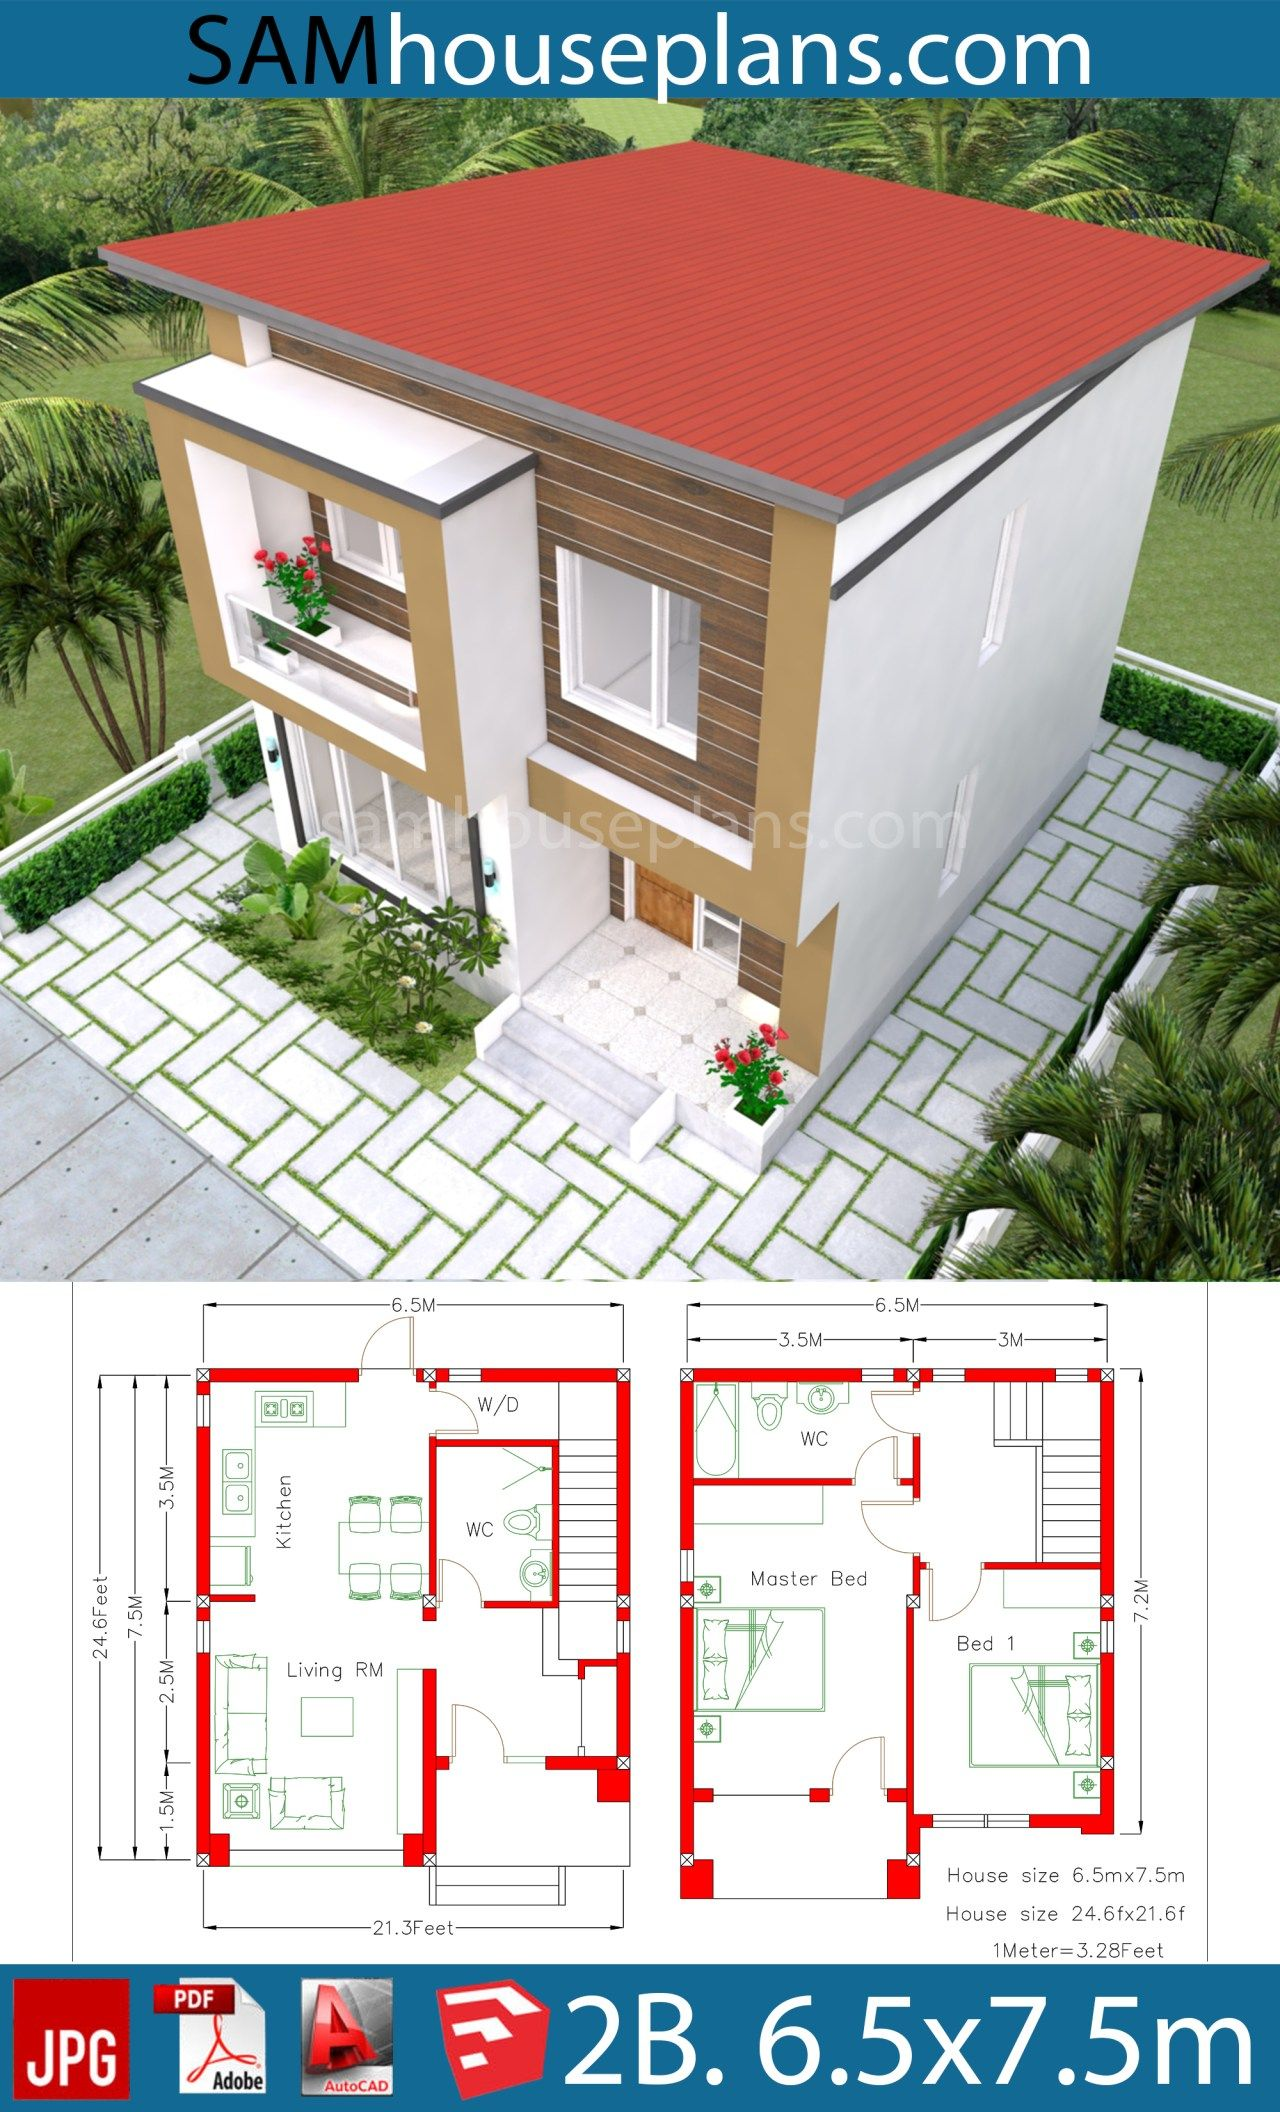 House Plan 6 5x7 5m With 2 Bedrooms A2 Sam House Plans House Plans House Construction Plan House Design Pictures